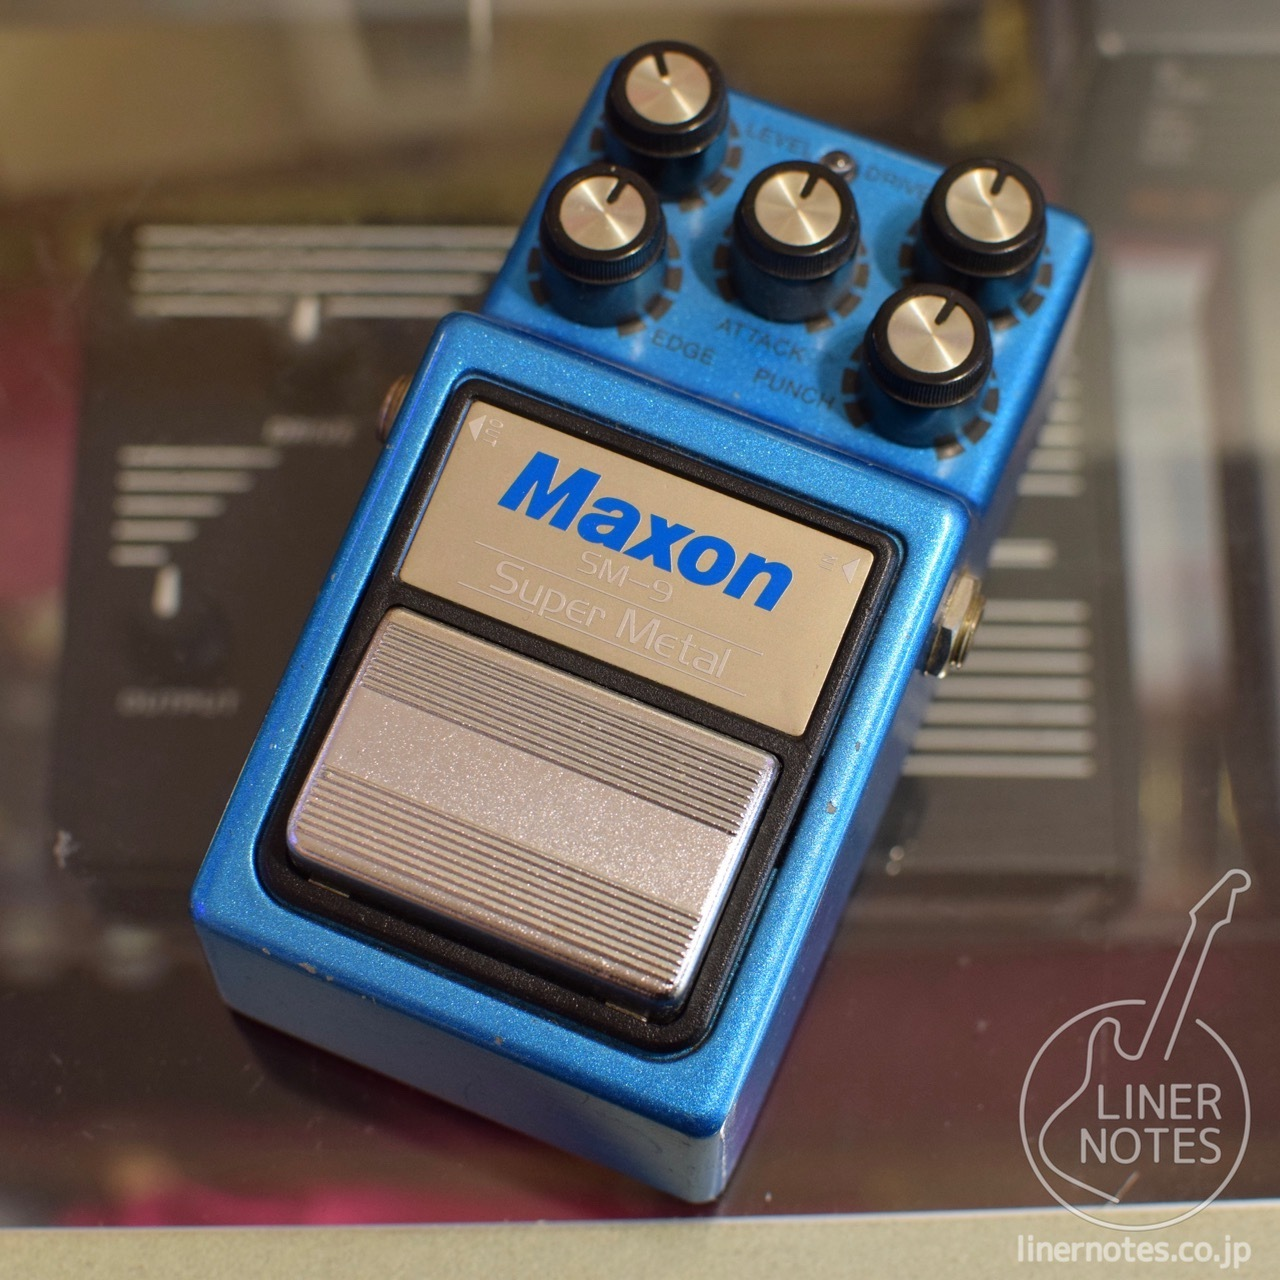 Maxon SM-9 Super Metal